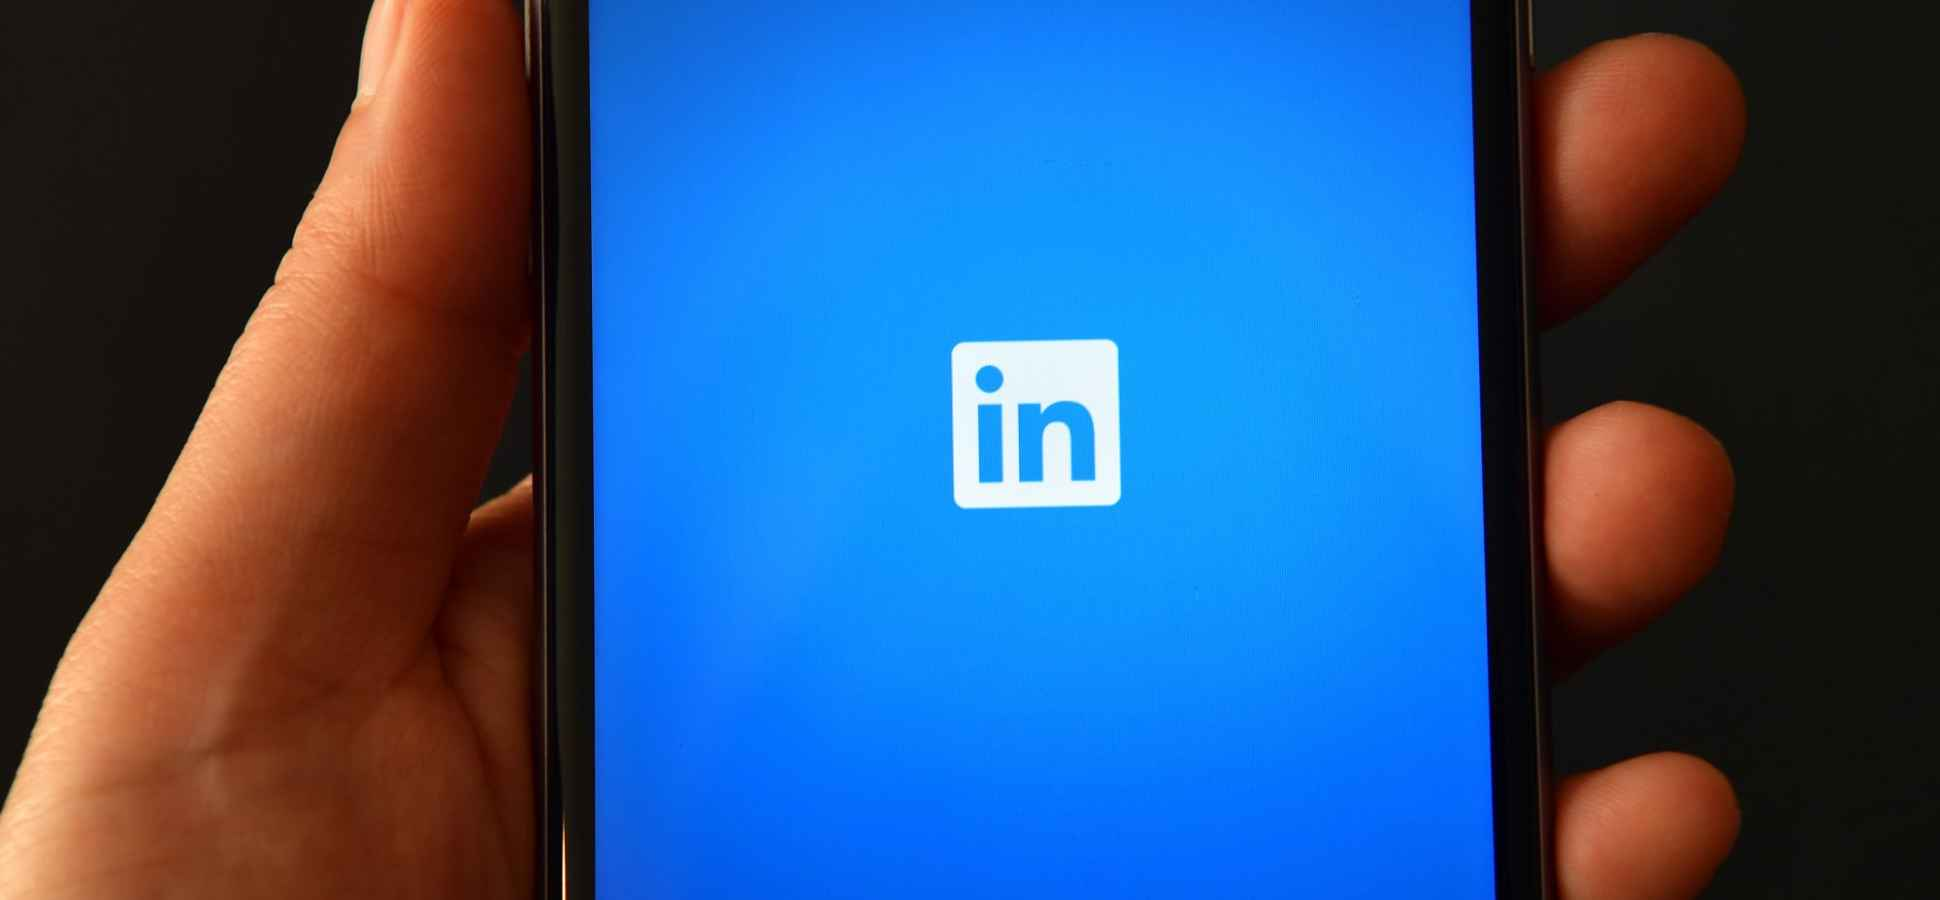 The Secret to Getting Noticed on LinkedIn